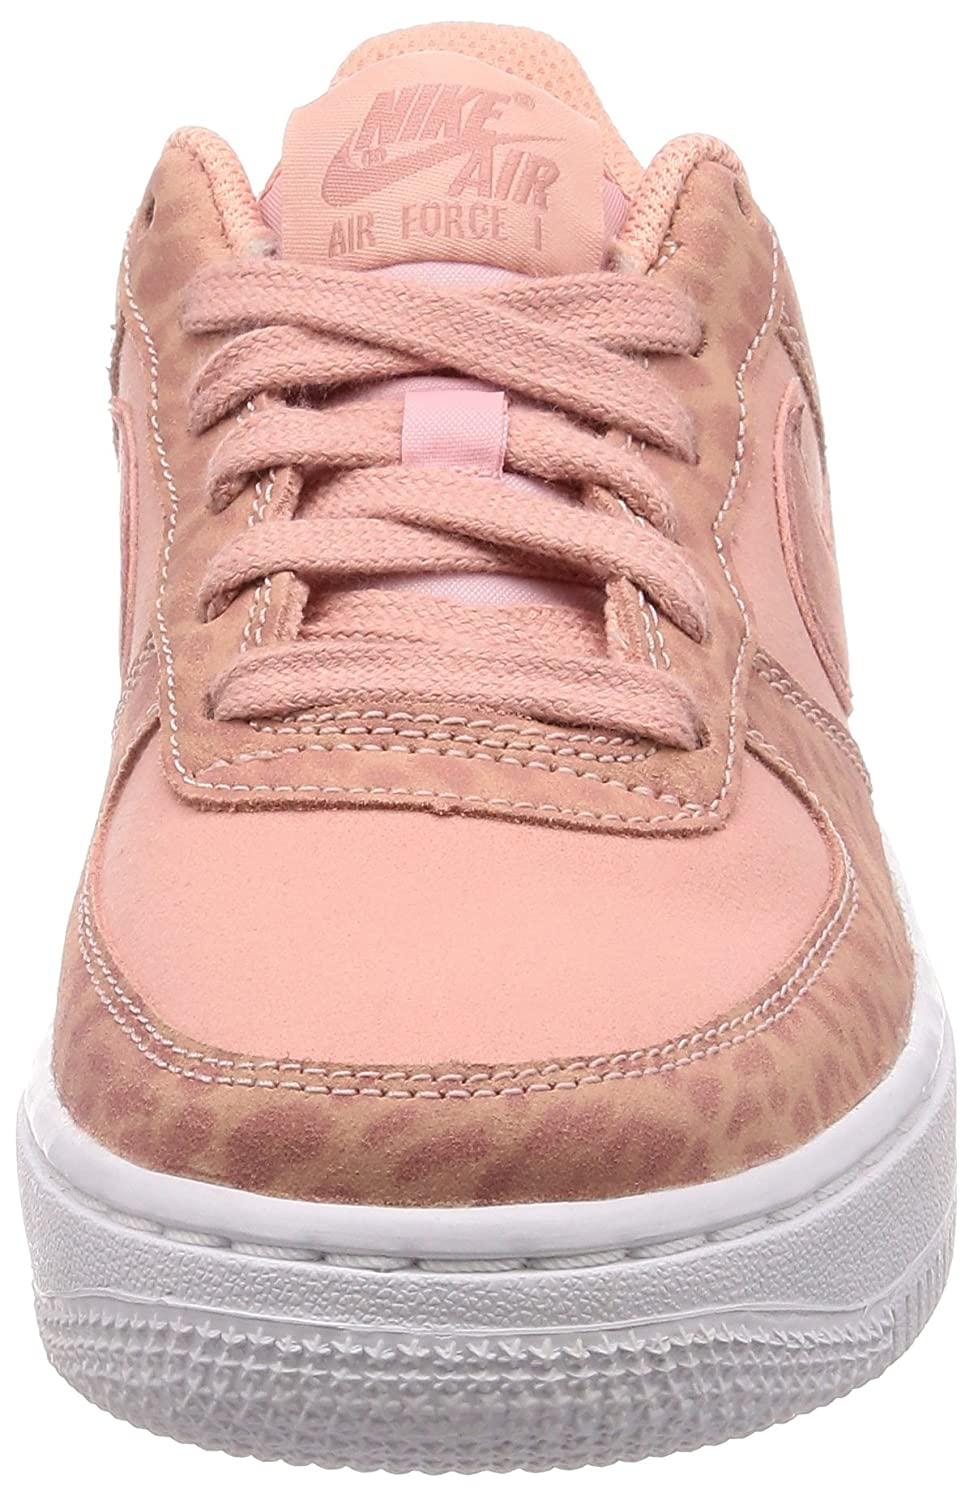 fa6595844f NIKE Unisex Kids' Air Force 1 Lv8 (gs) Low-Top Sneakers, (Coral Stardust/Rust  Pink-White 600), 5.5 UK: Amazon.co.uk: Shoes & Bags